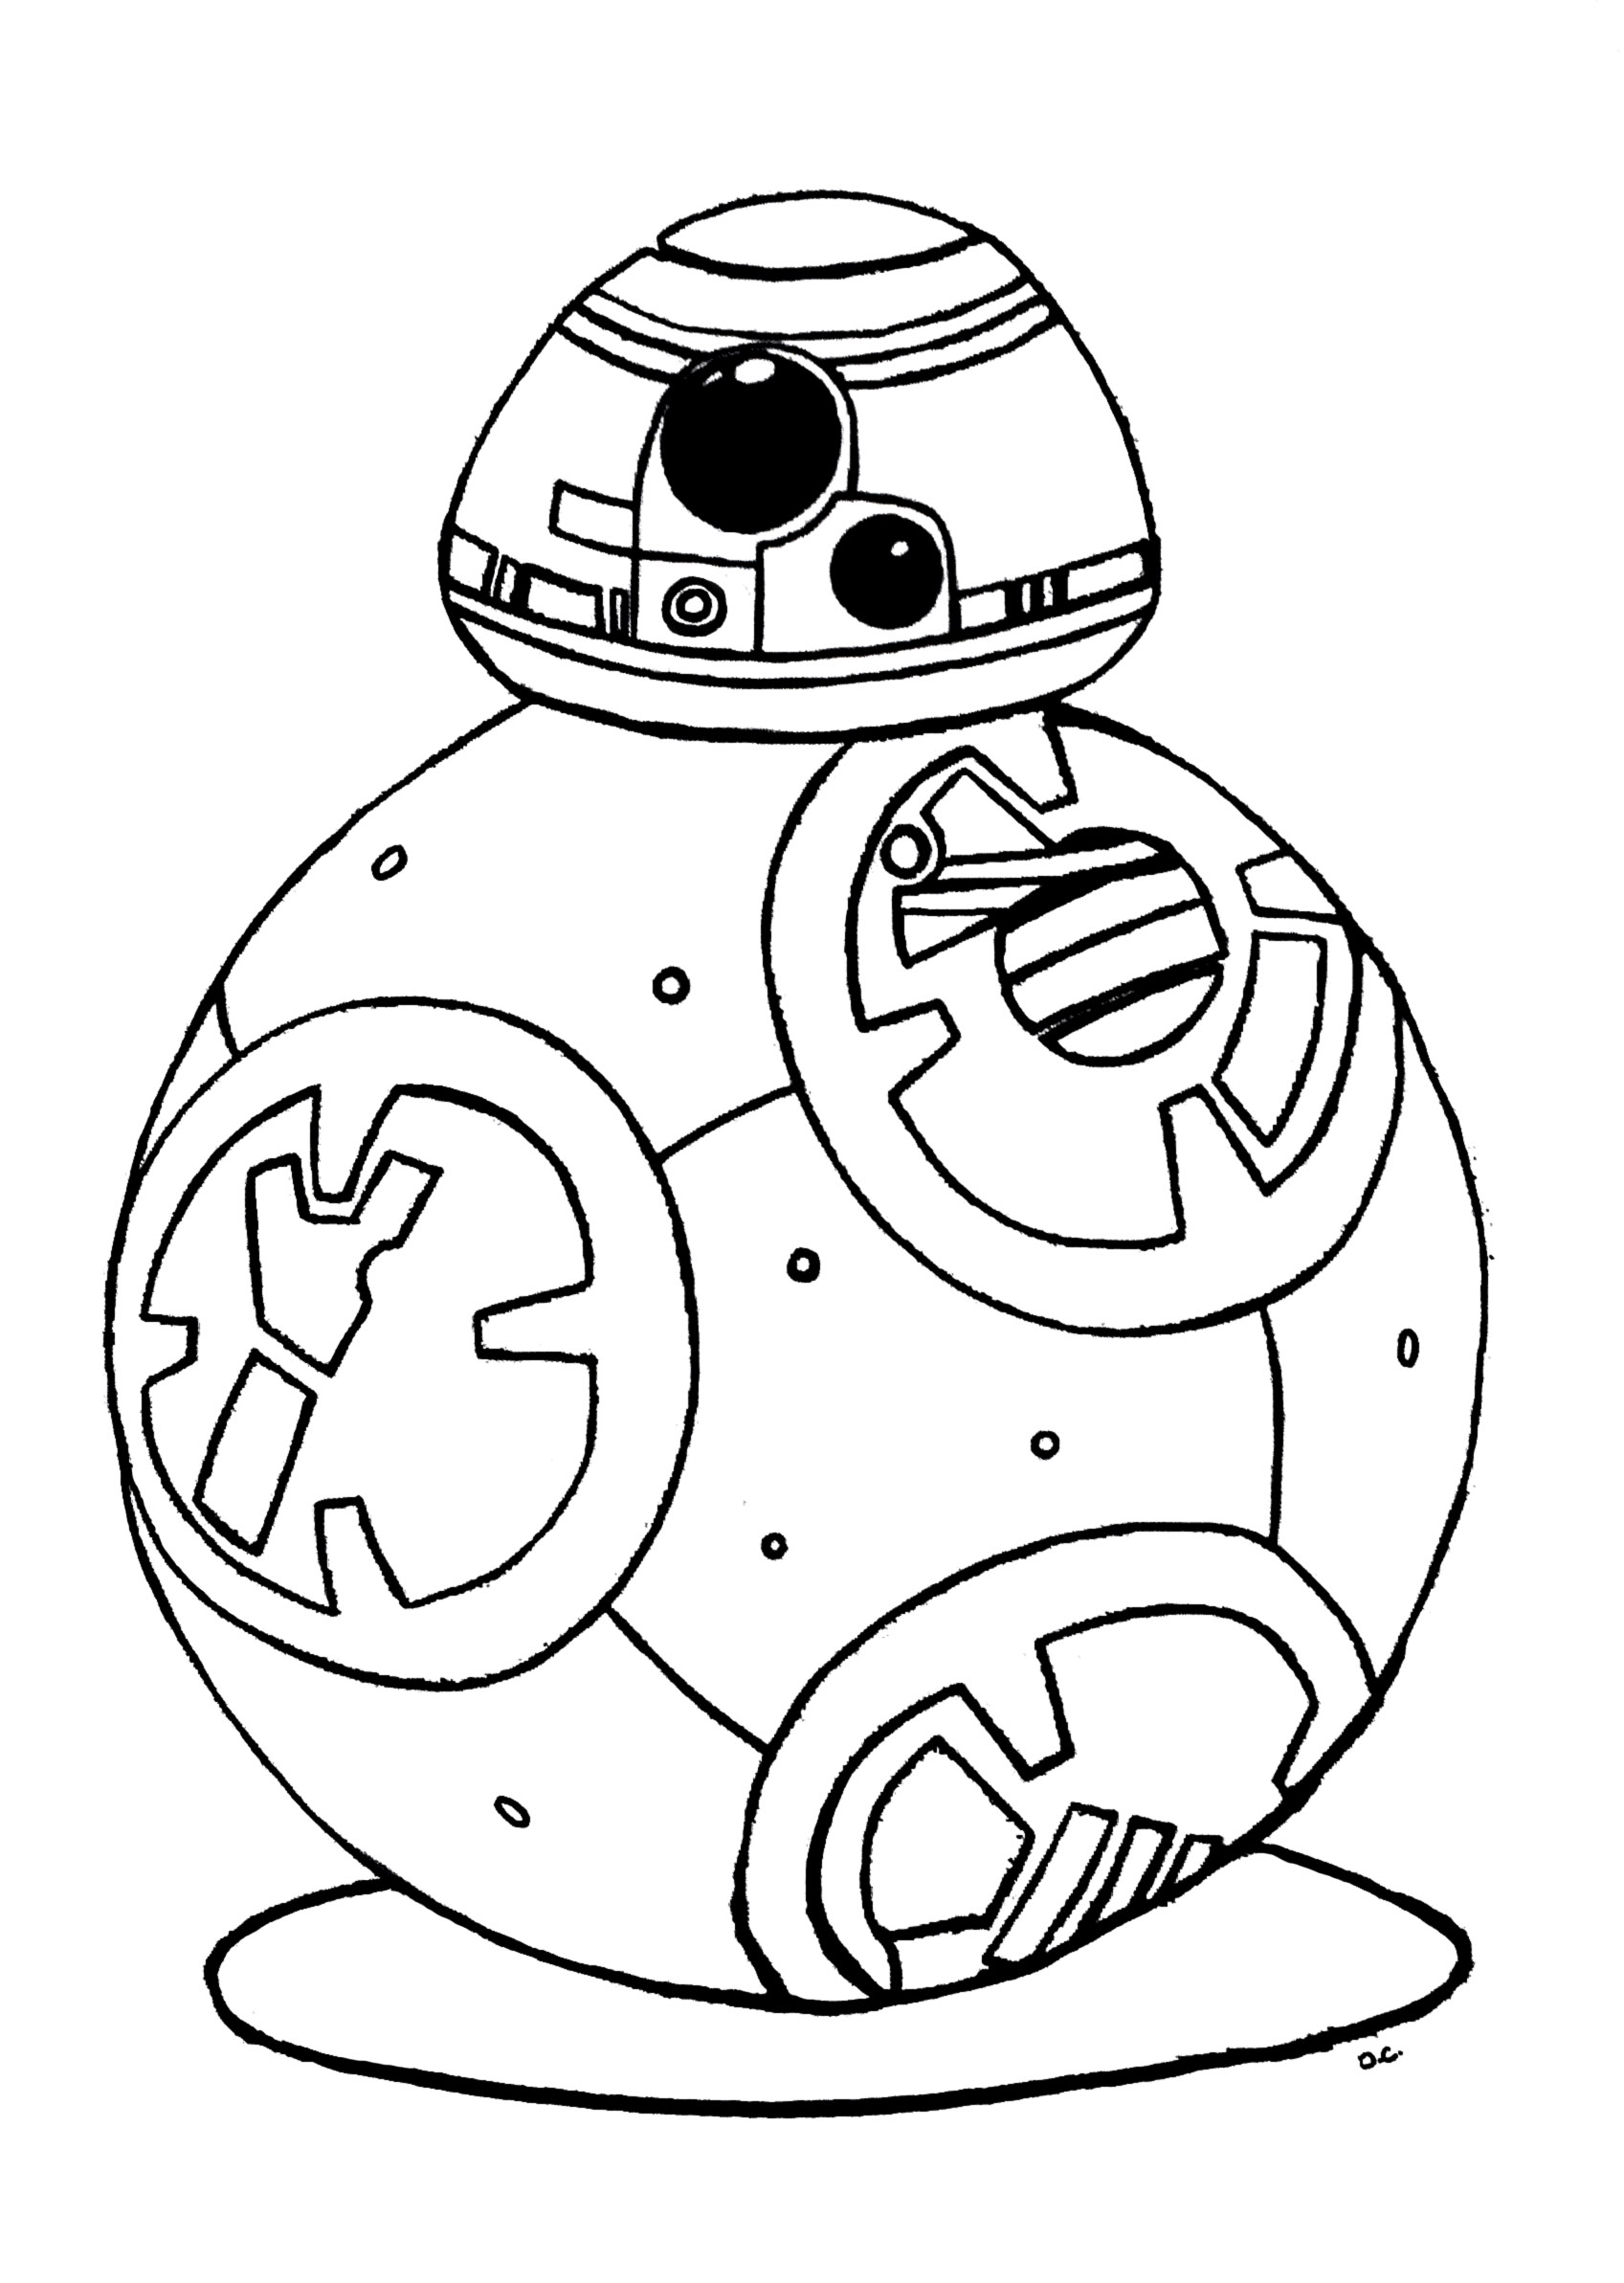 star wars coloring pages to print star wars to download star wars kids coloring pages to coloring print wars pages star